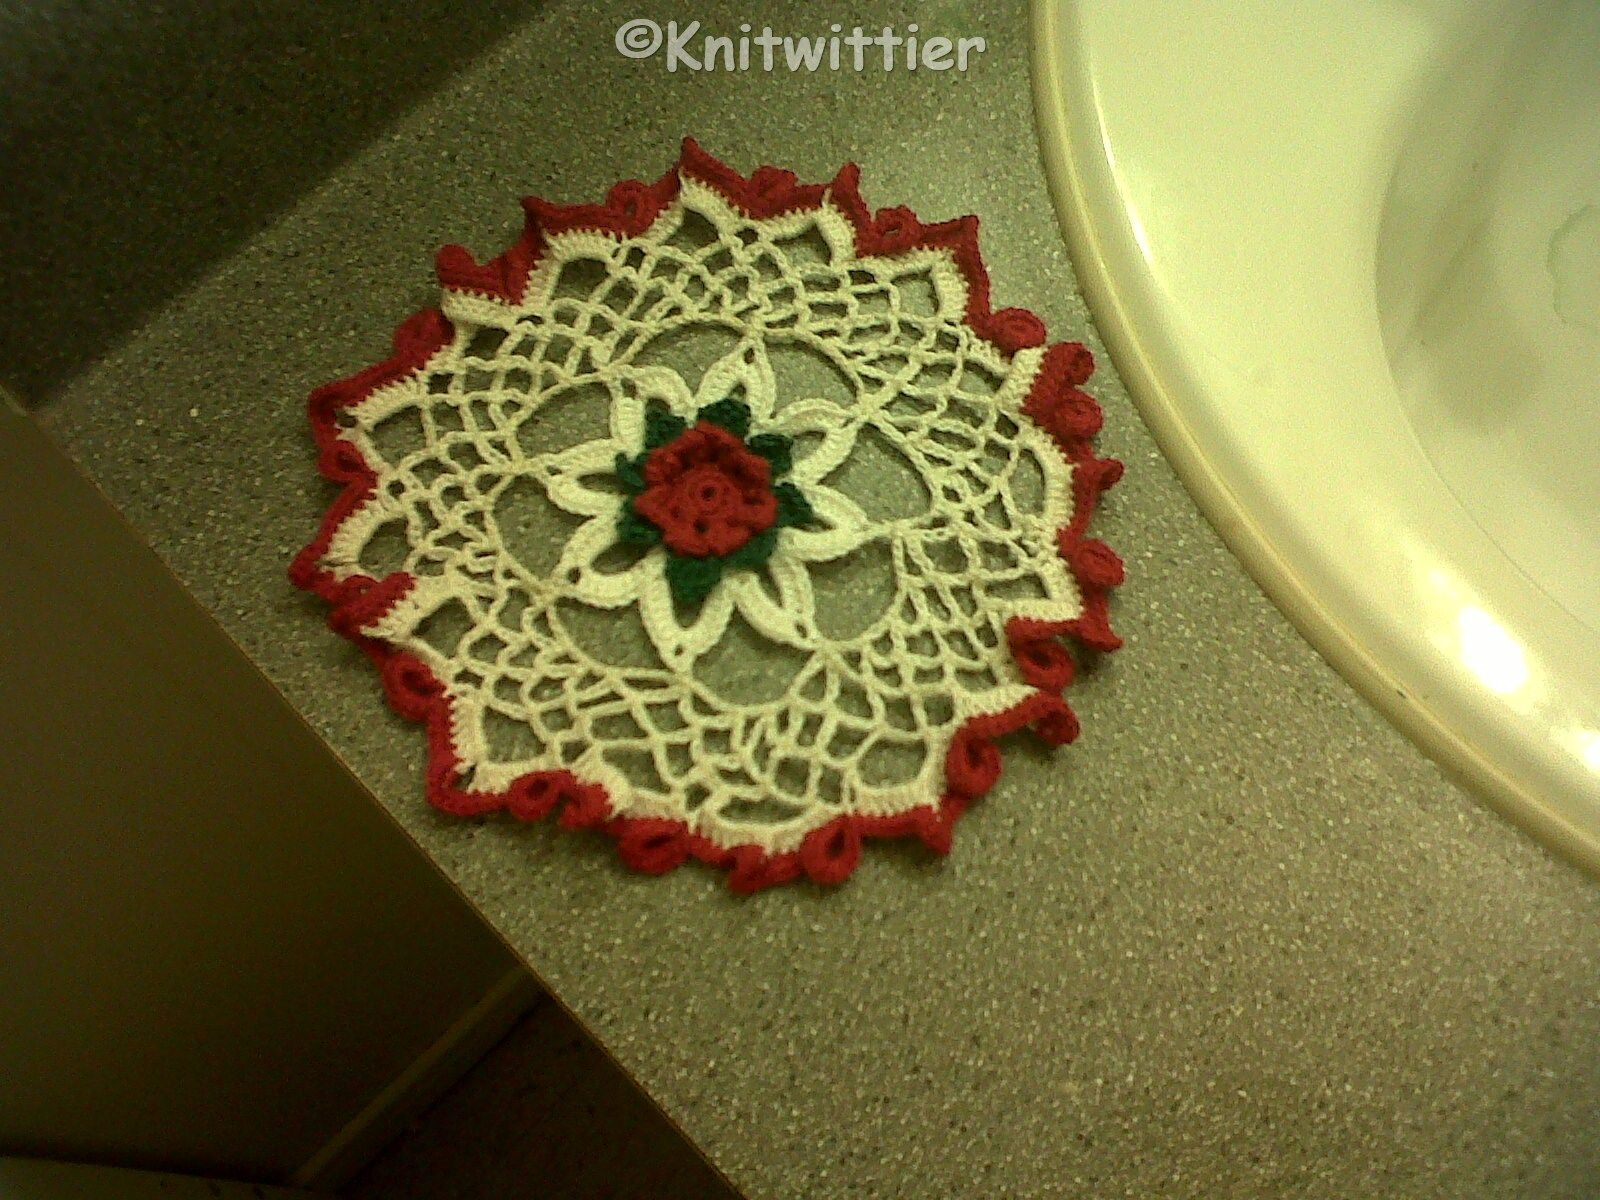 doily I made that didn't turn out quite right